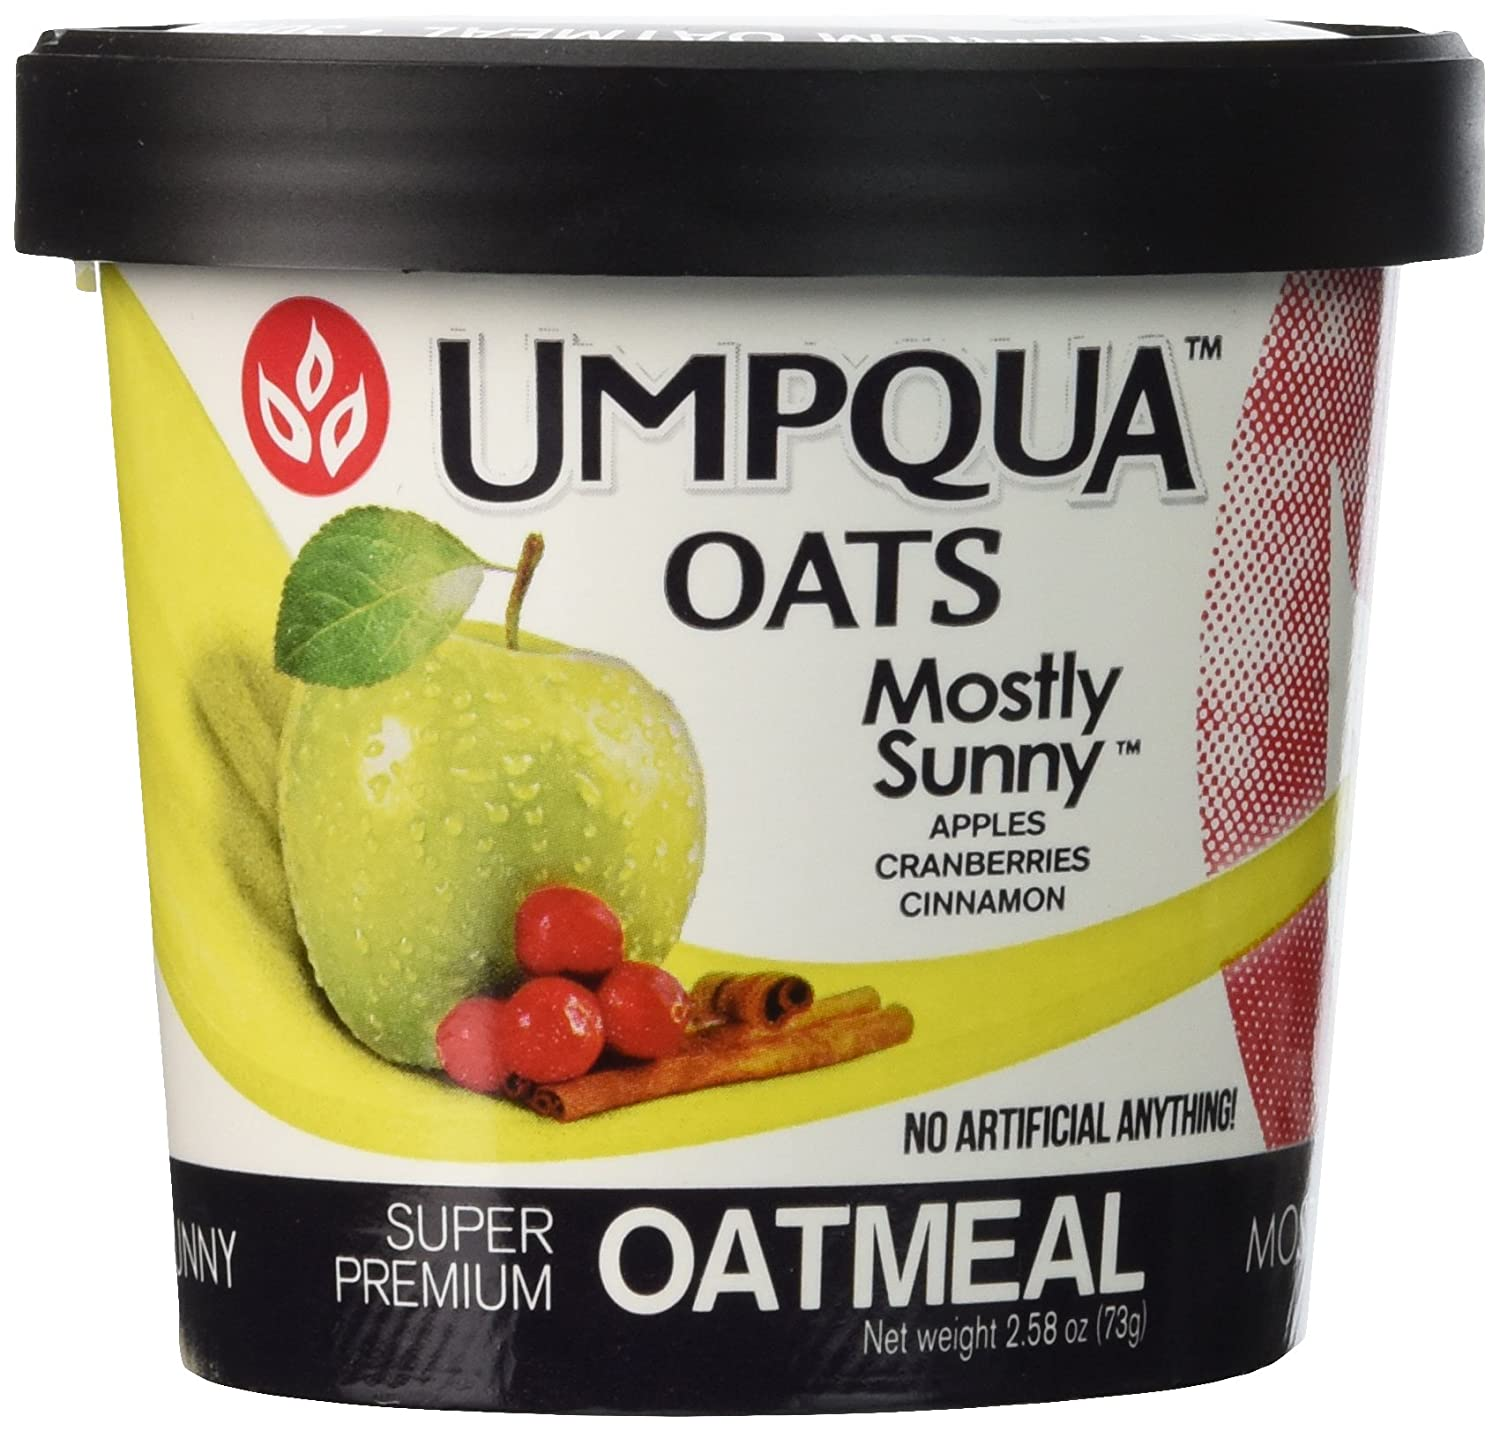 Umpqua Oats Mostly Sunny Apple Cranberry Cinnamon Instant Breakfast Cereal Oatmeal Cups, 2.58 Ounce (12 Pack)